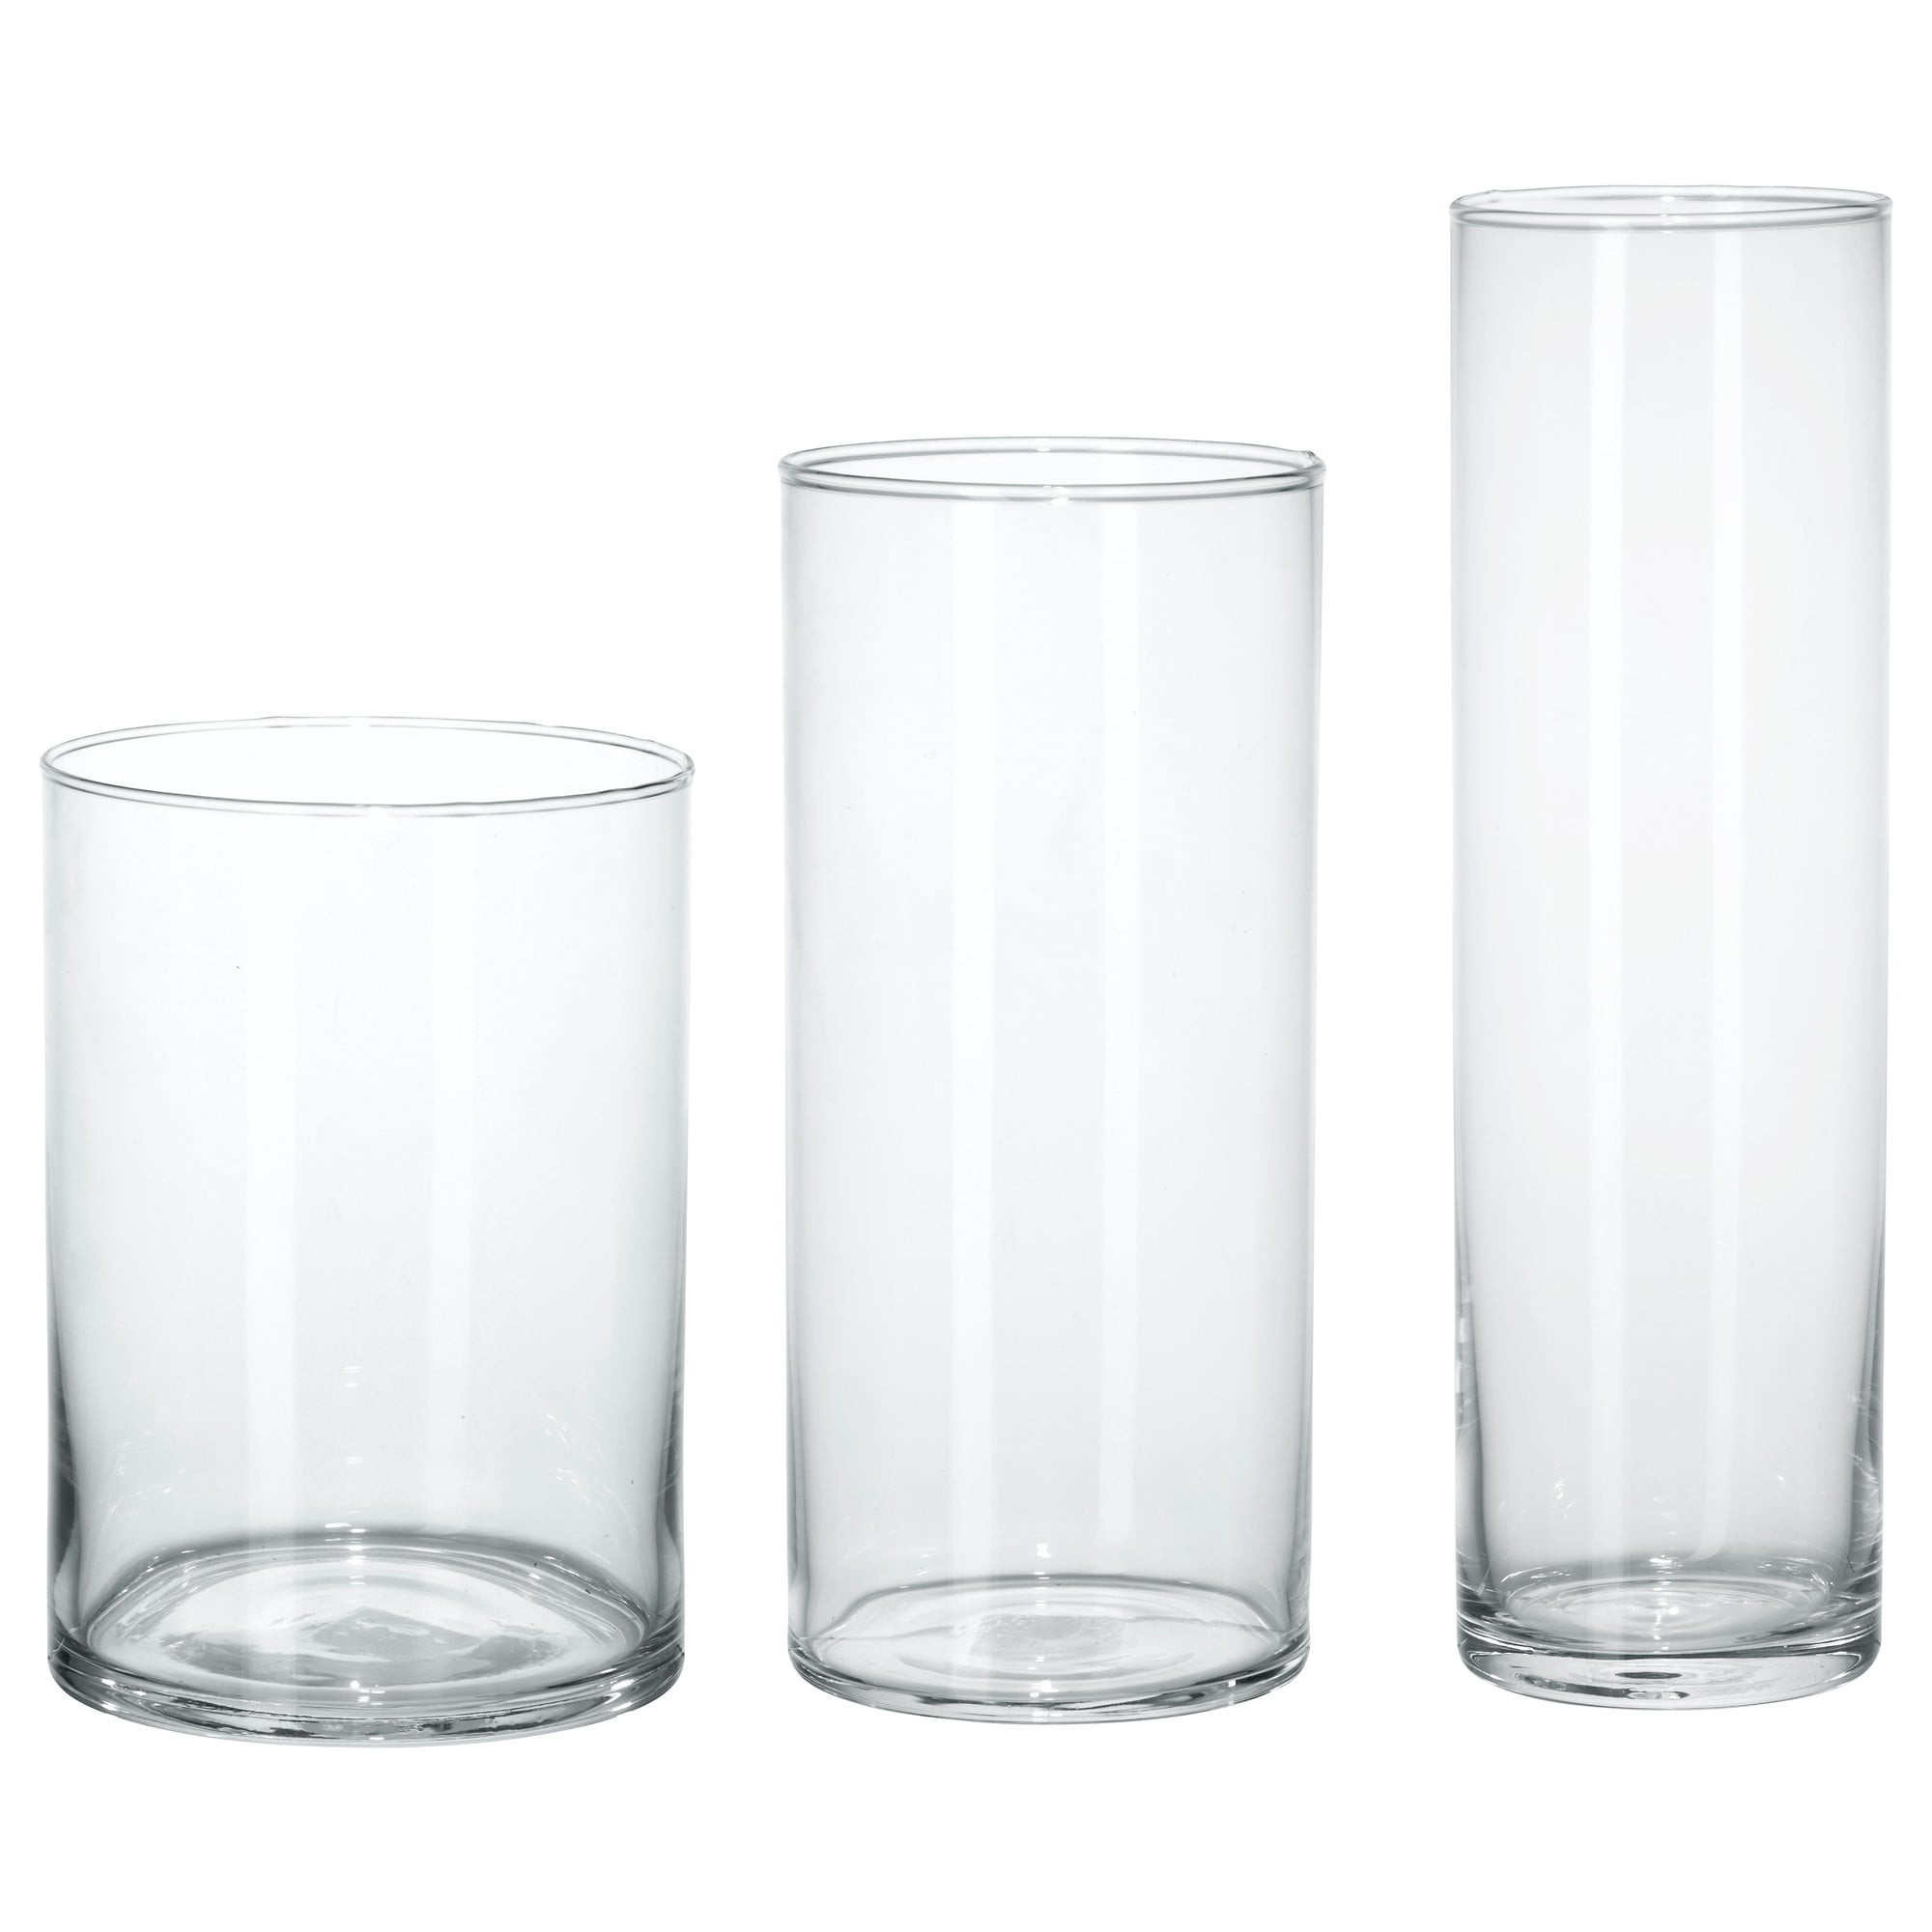 cheap white bud vases of cylinder vase set of 3 ikea intended for english frana§ais